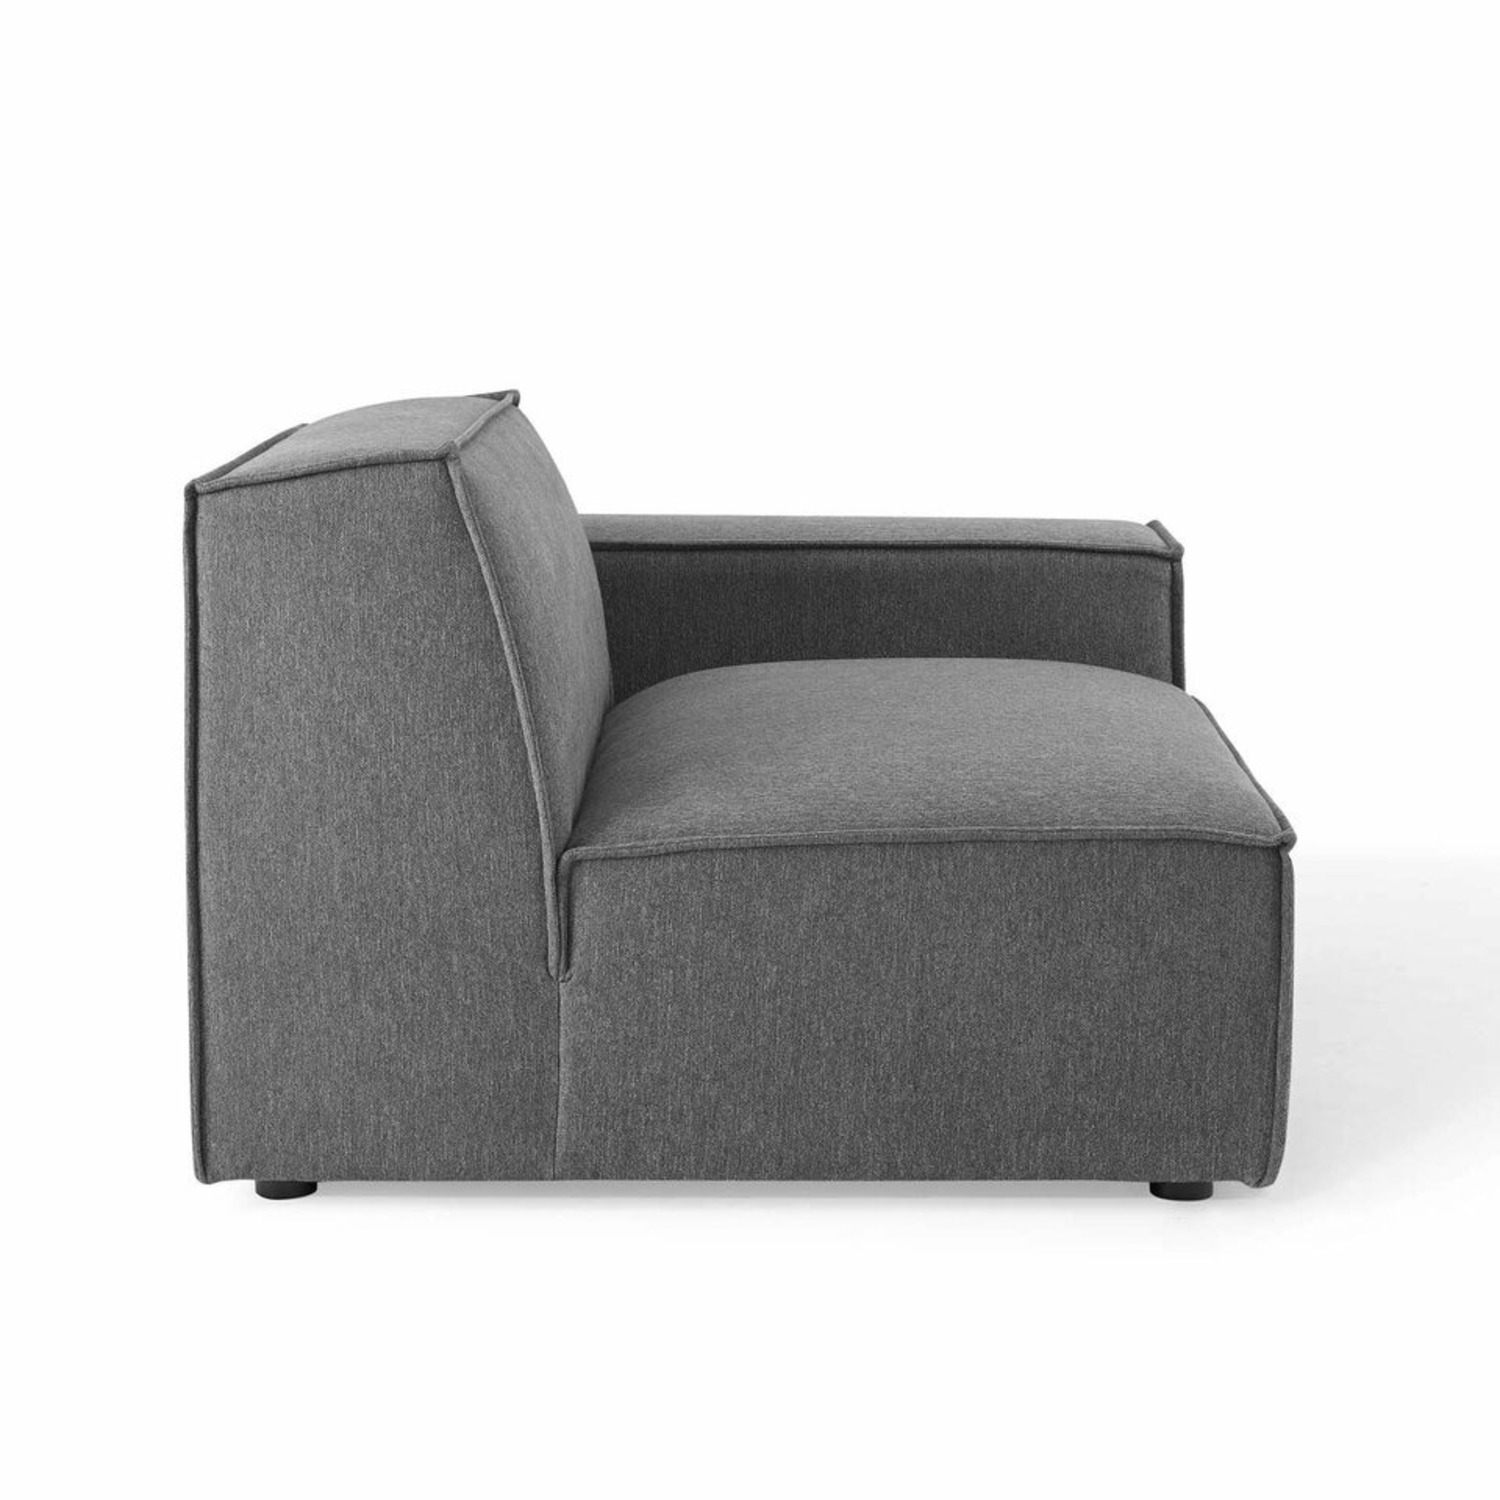 6-Piece Sectional Sofa In Charcoal Upholstery - image-3